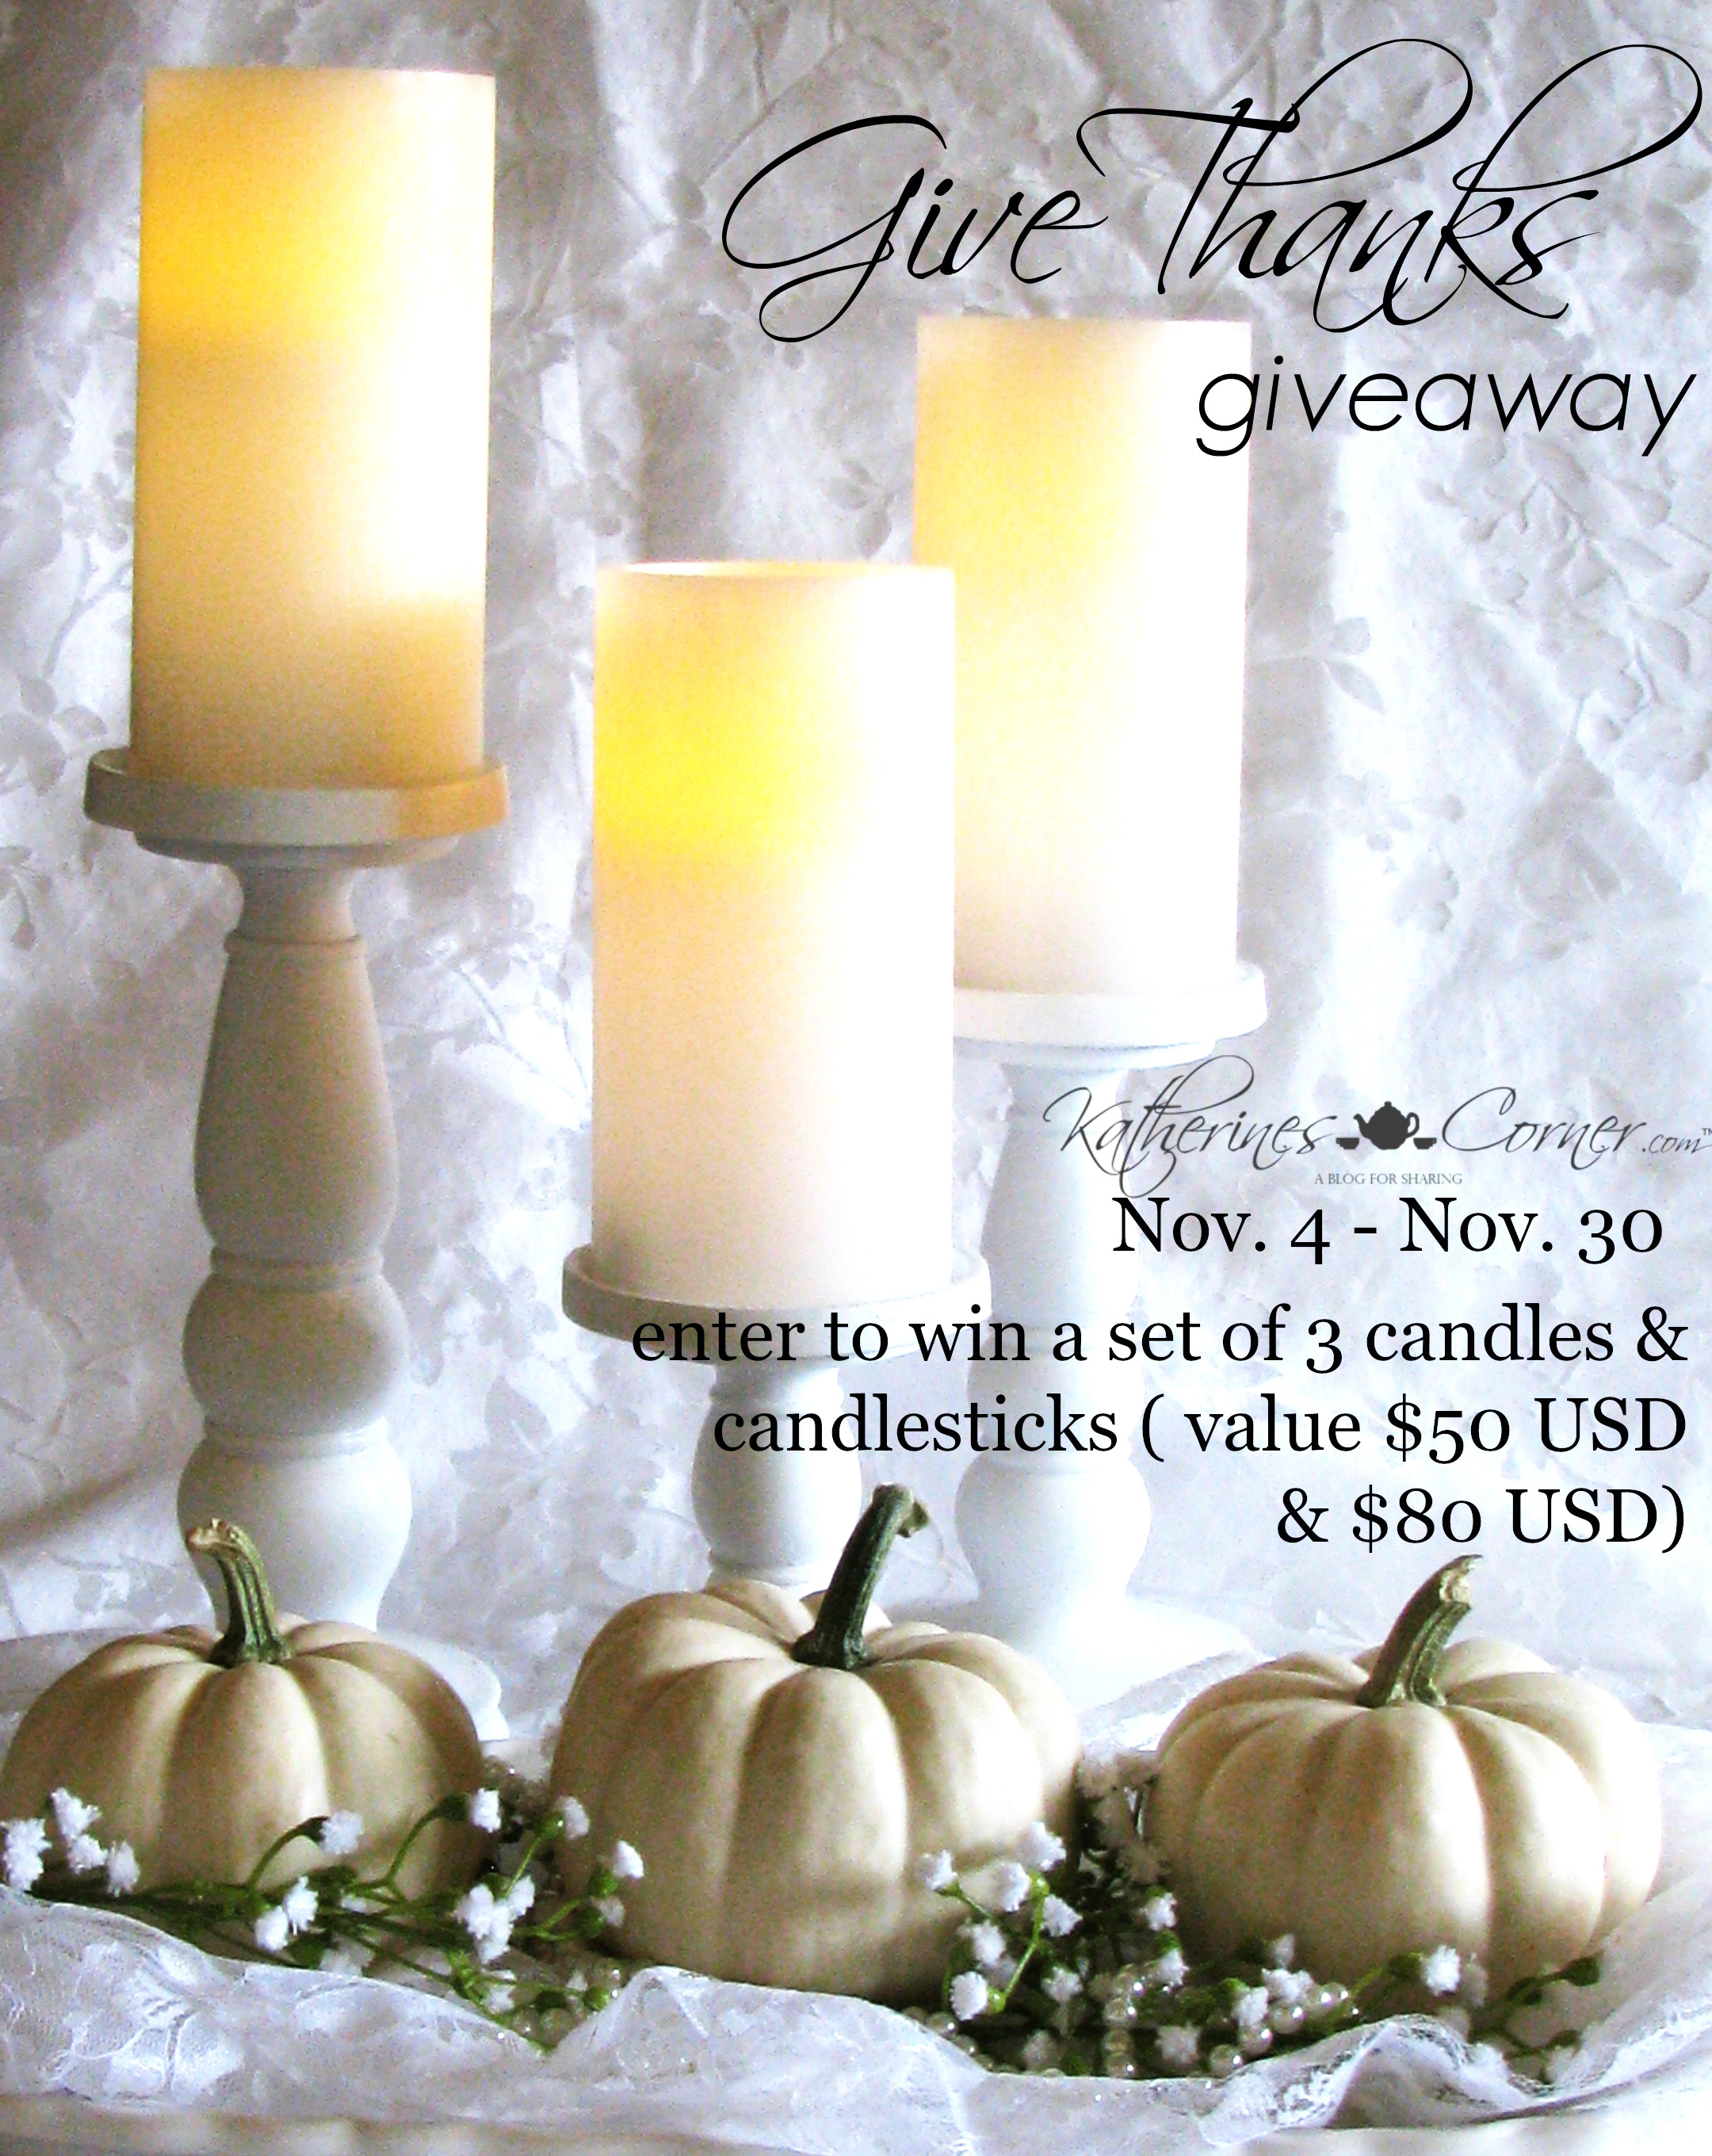 Autumn Vignette Give Thanks Giveaway